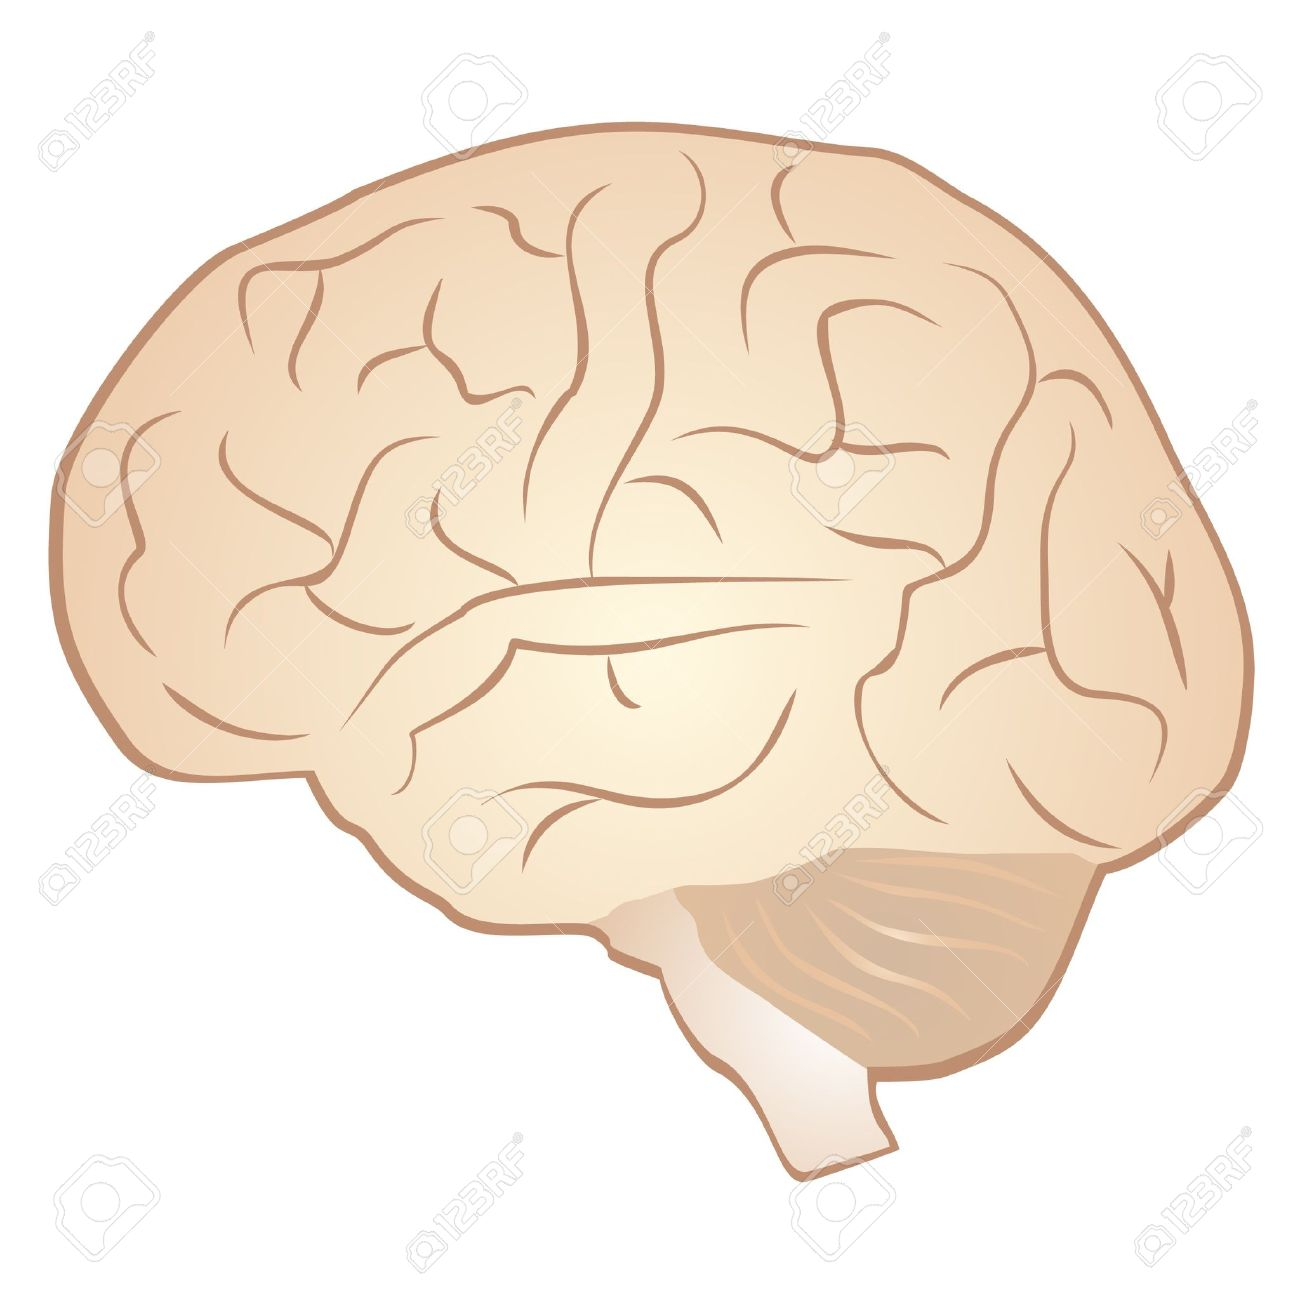 Drawing Of A Human Brain Royalty Free Cliparts Vectors And Stock